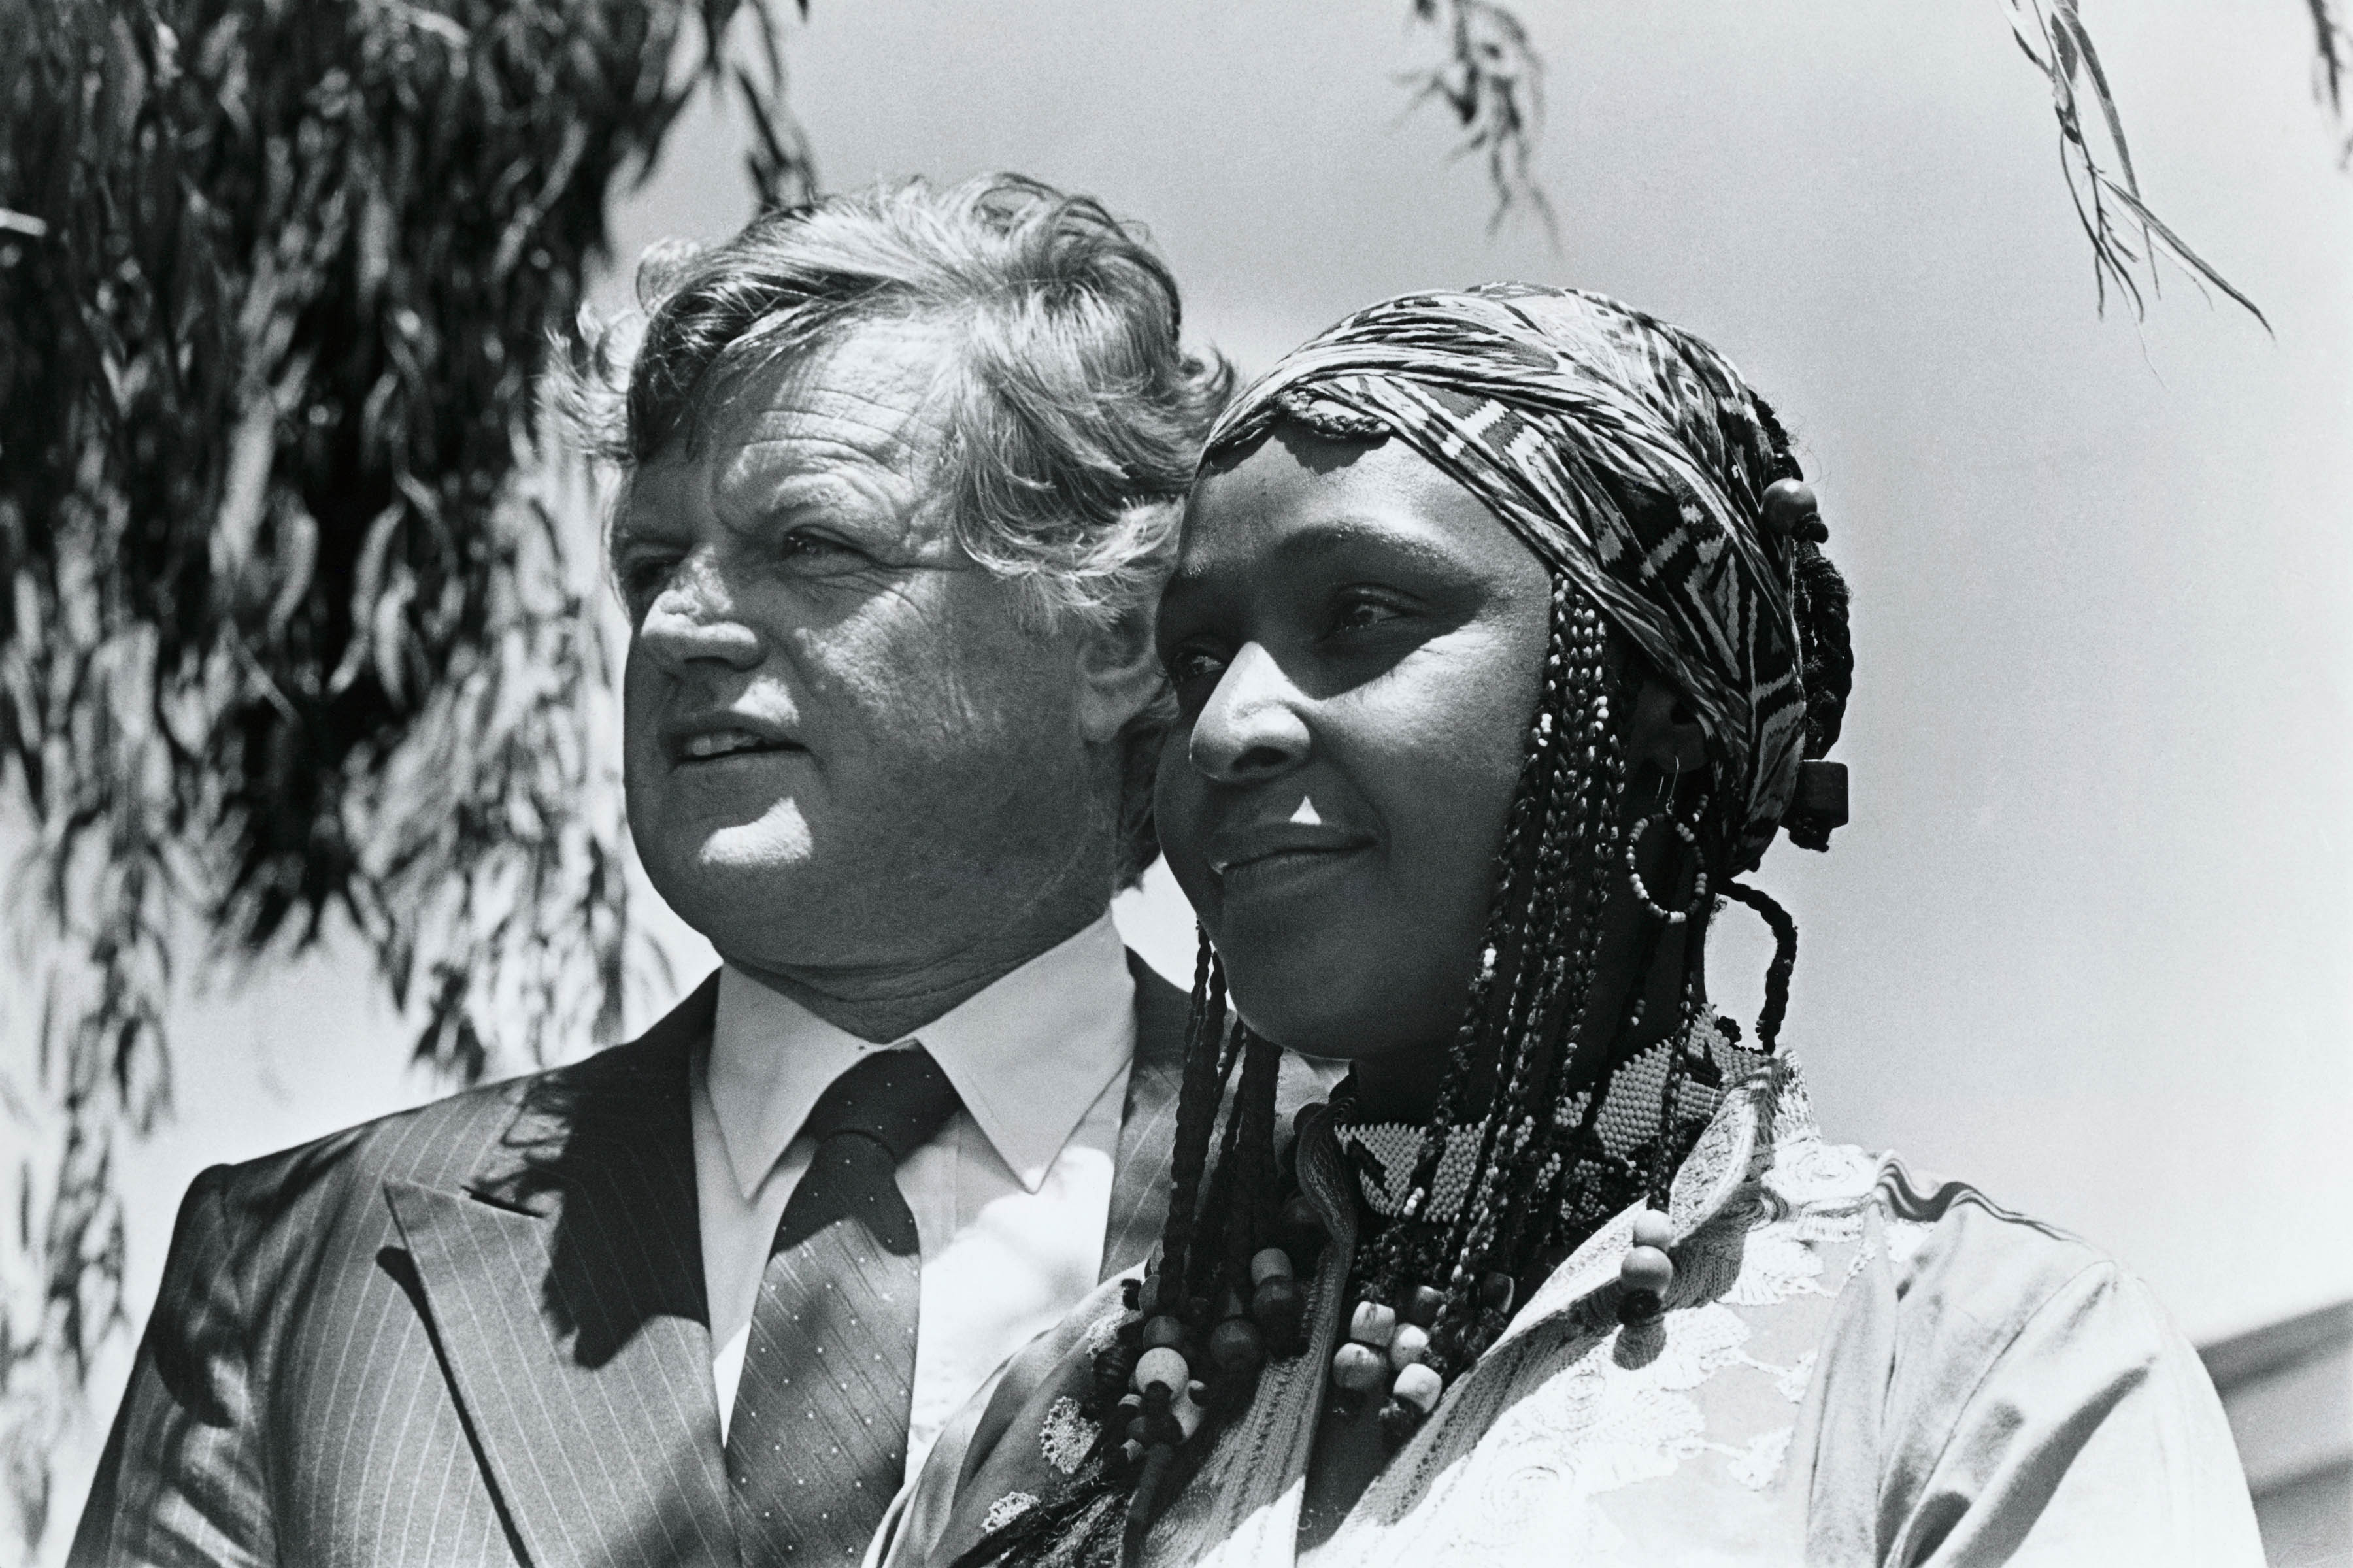 1984: United States senator Edward Kennedy with Winnie Madikizela-Mandela while she was in exile in Brandfort in the Free State, South Africa. (Photograph by Gideon Mendel/Corbis via Getty Images)